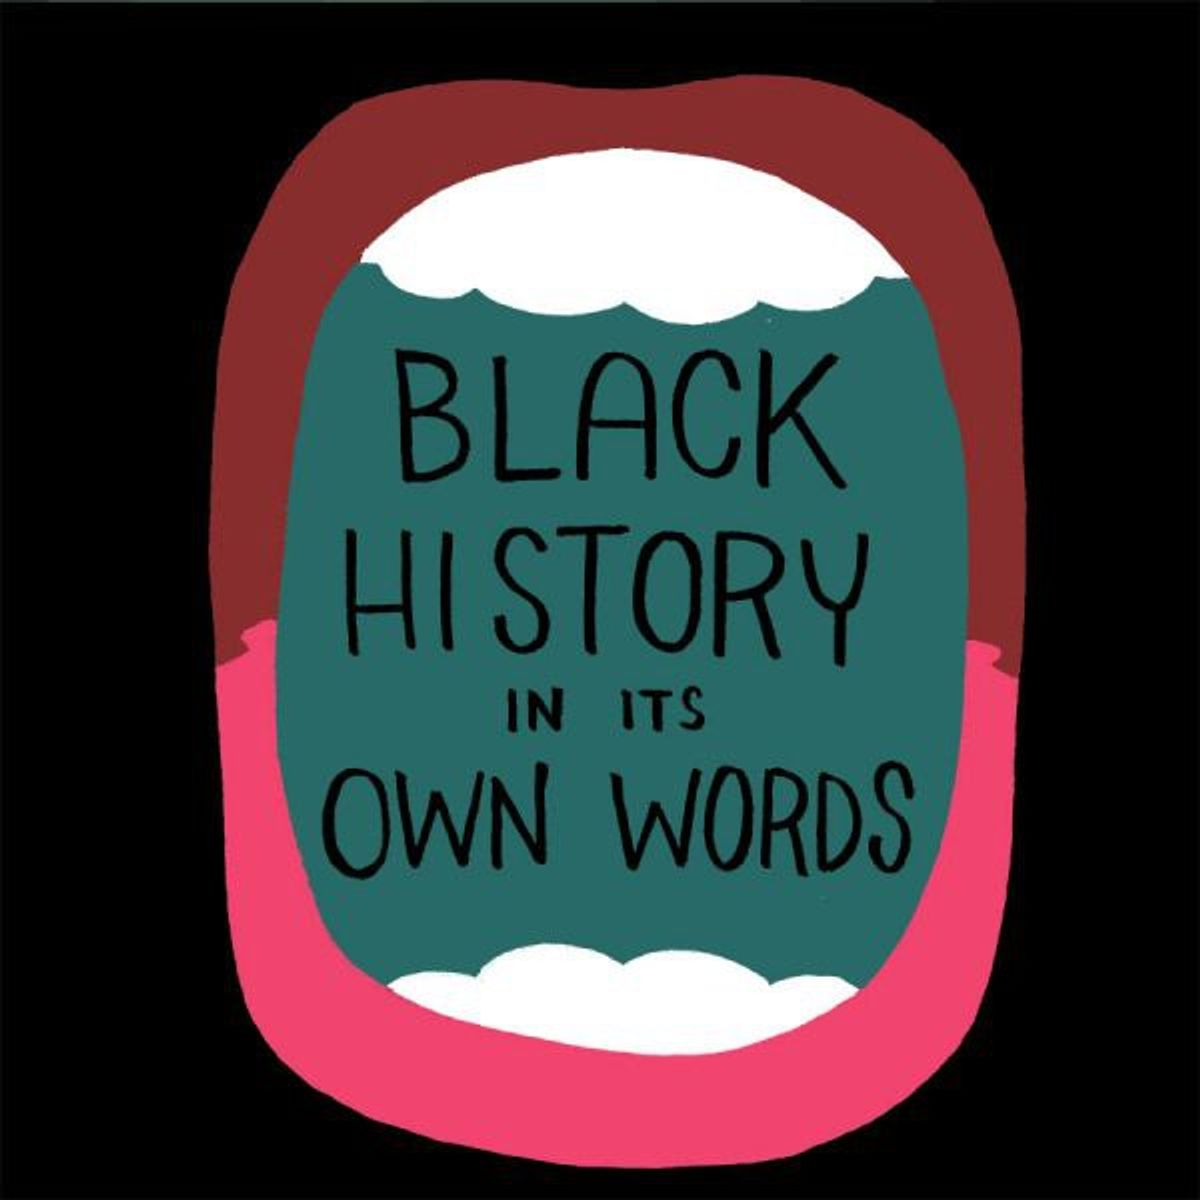 Black History Month Should Be Nixed